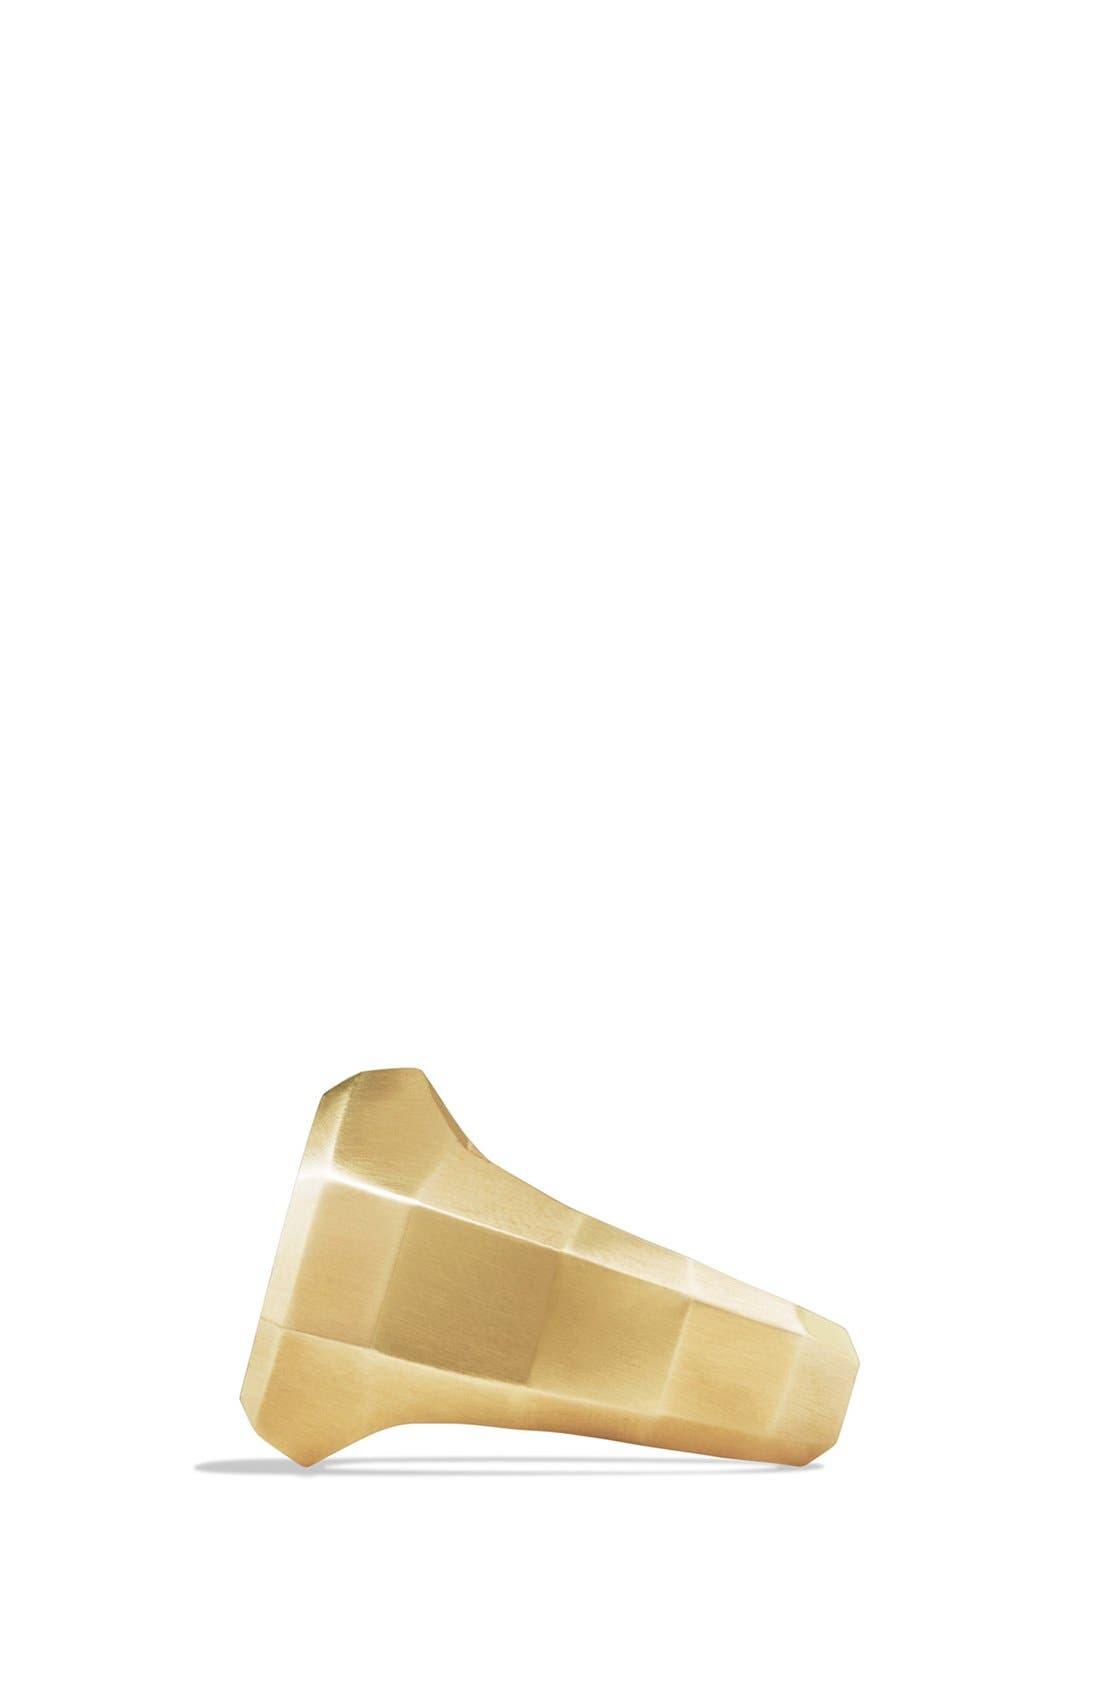 'Faceted' Signet Ring with 18k Gold,                             Alternate thumbnail 3, color,